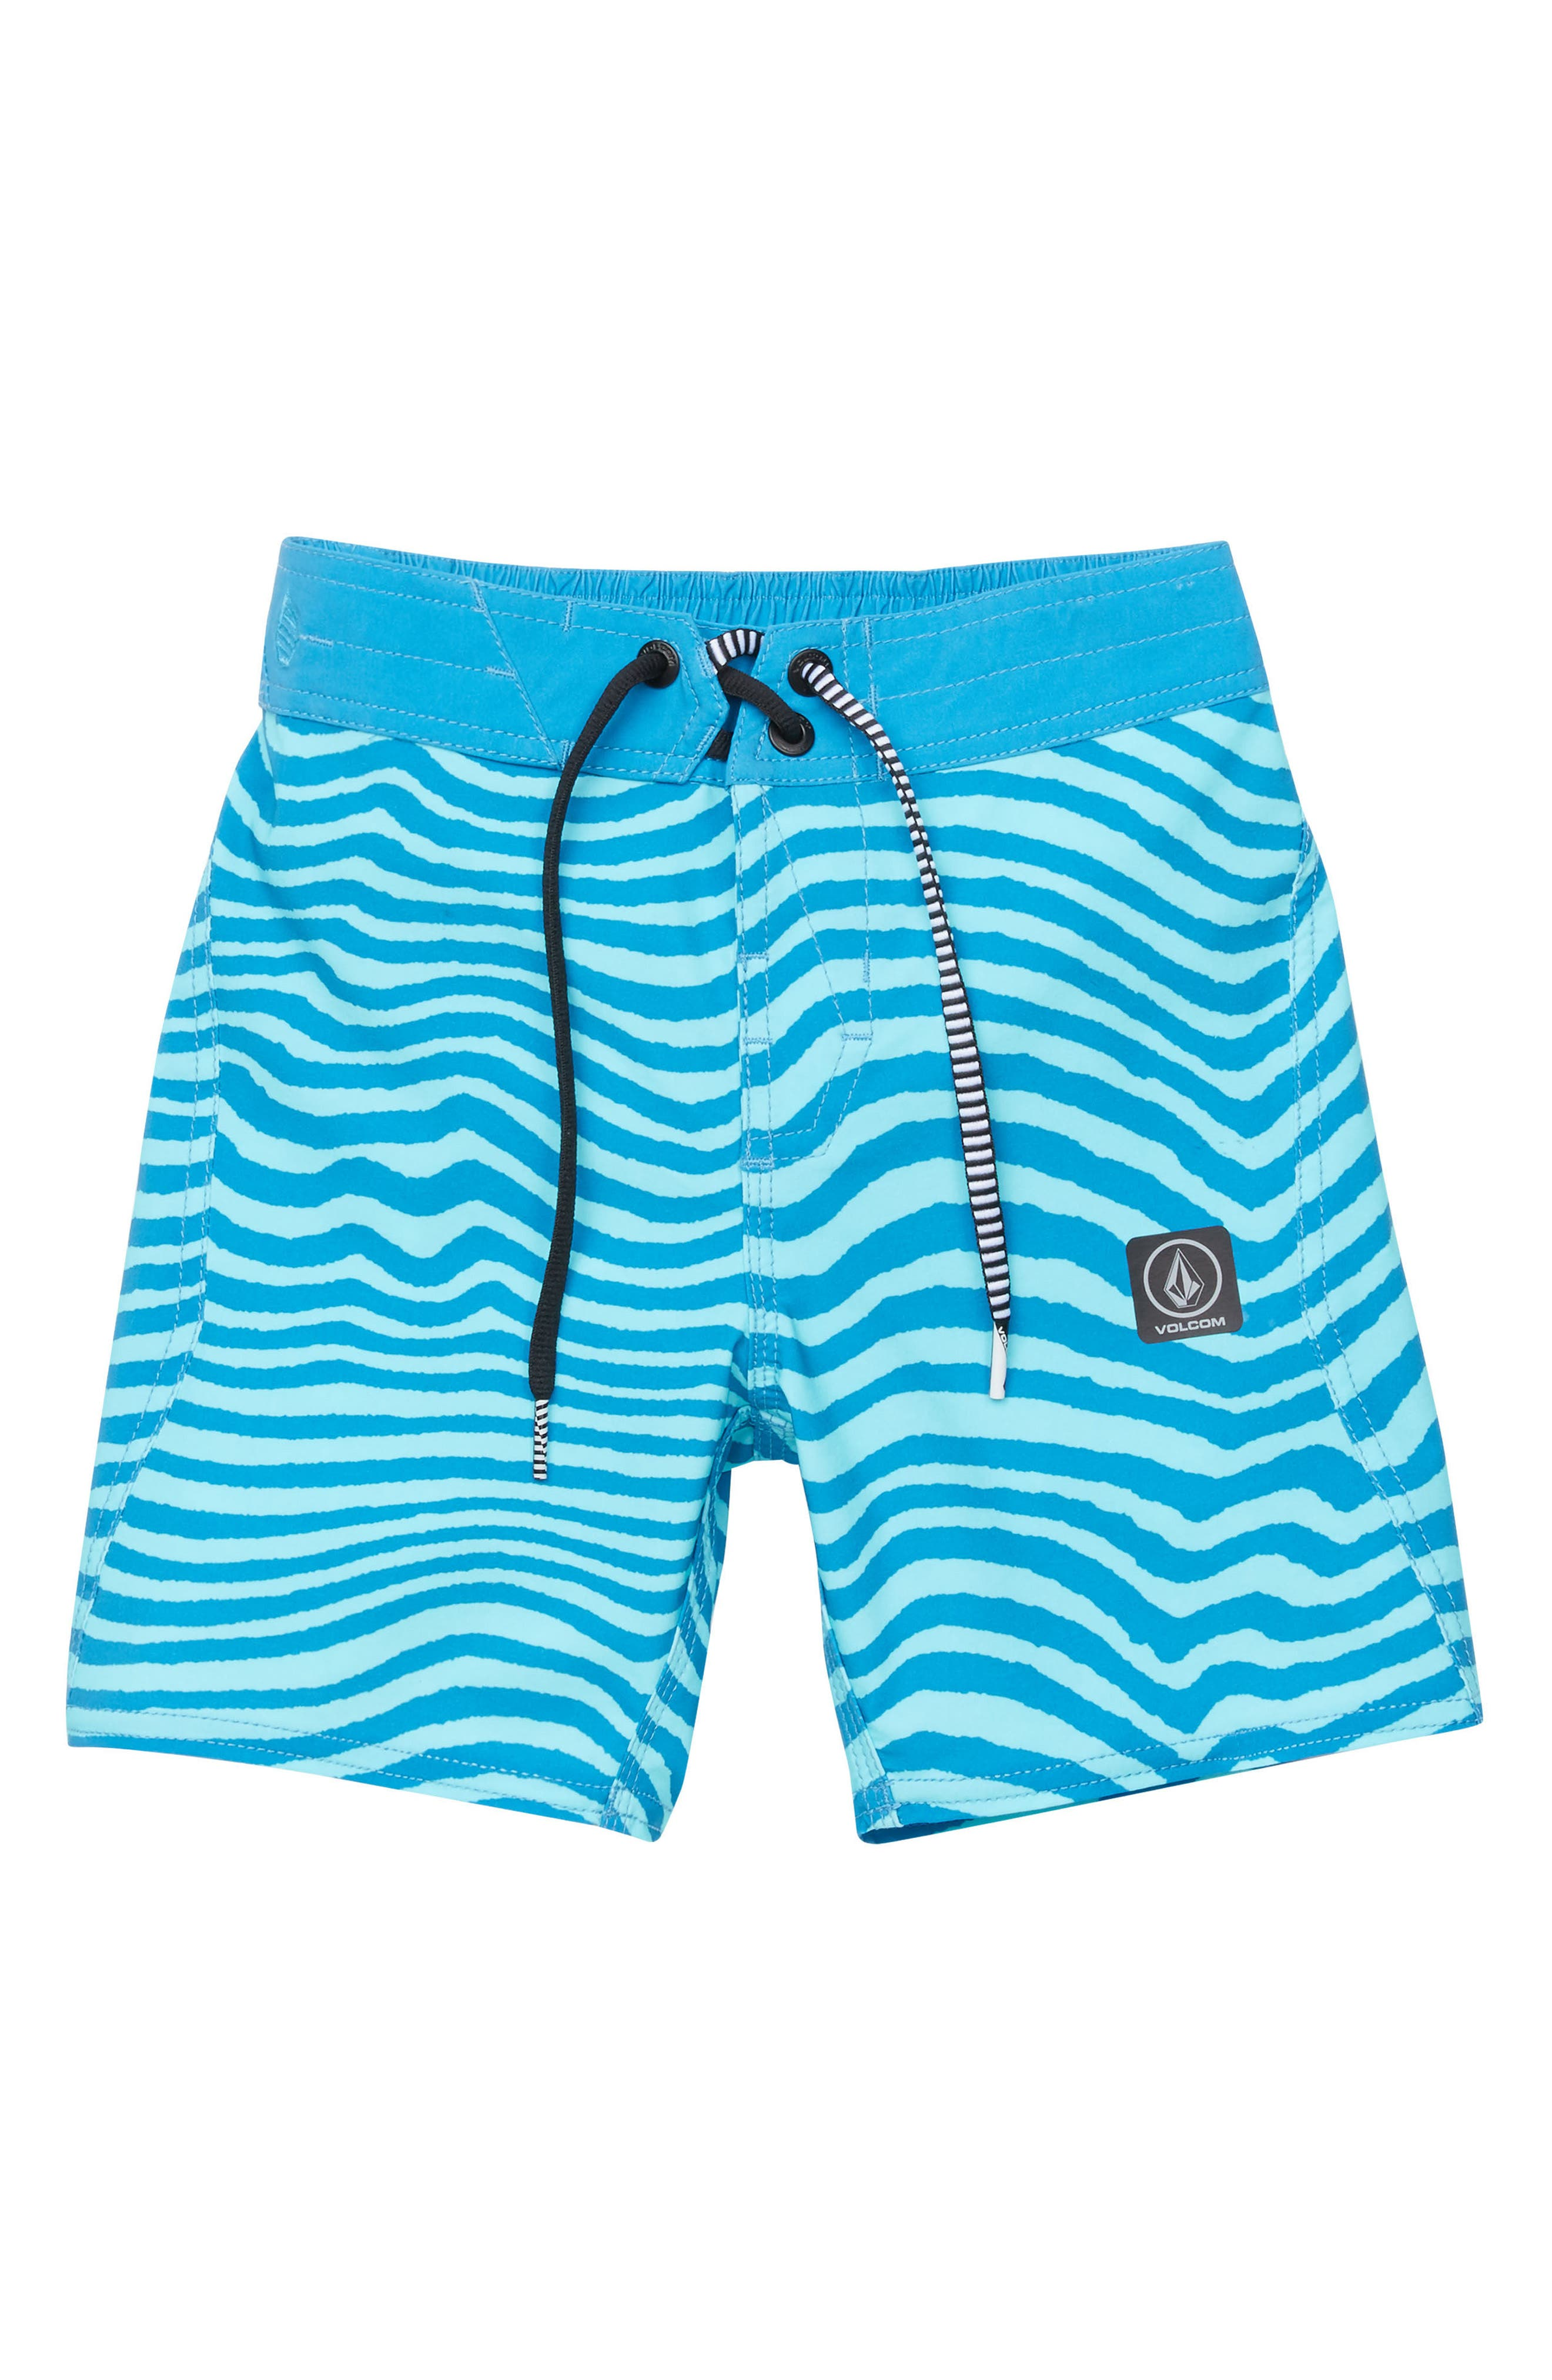 Mag Vibes Board Shorts,                             Main thumbnail 1, color,                             443